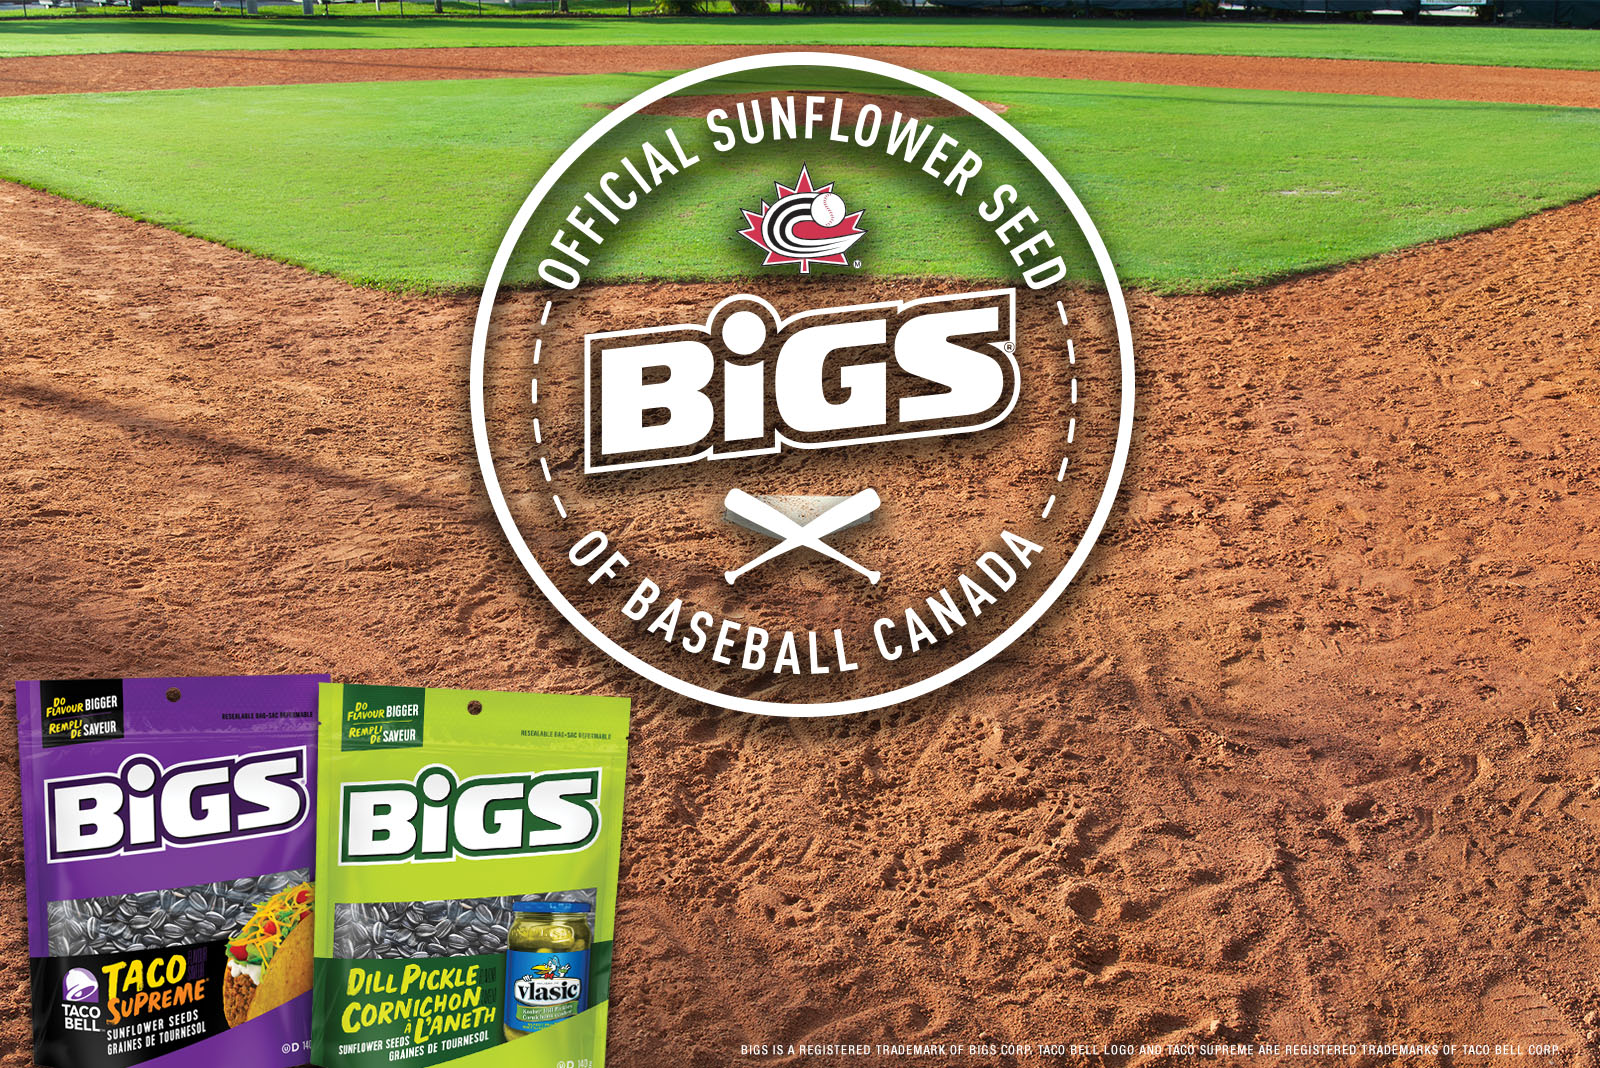 Baseball Canada reaches partnership with BIGS Seeds